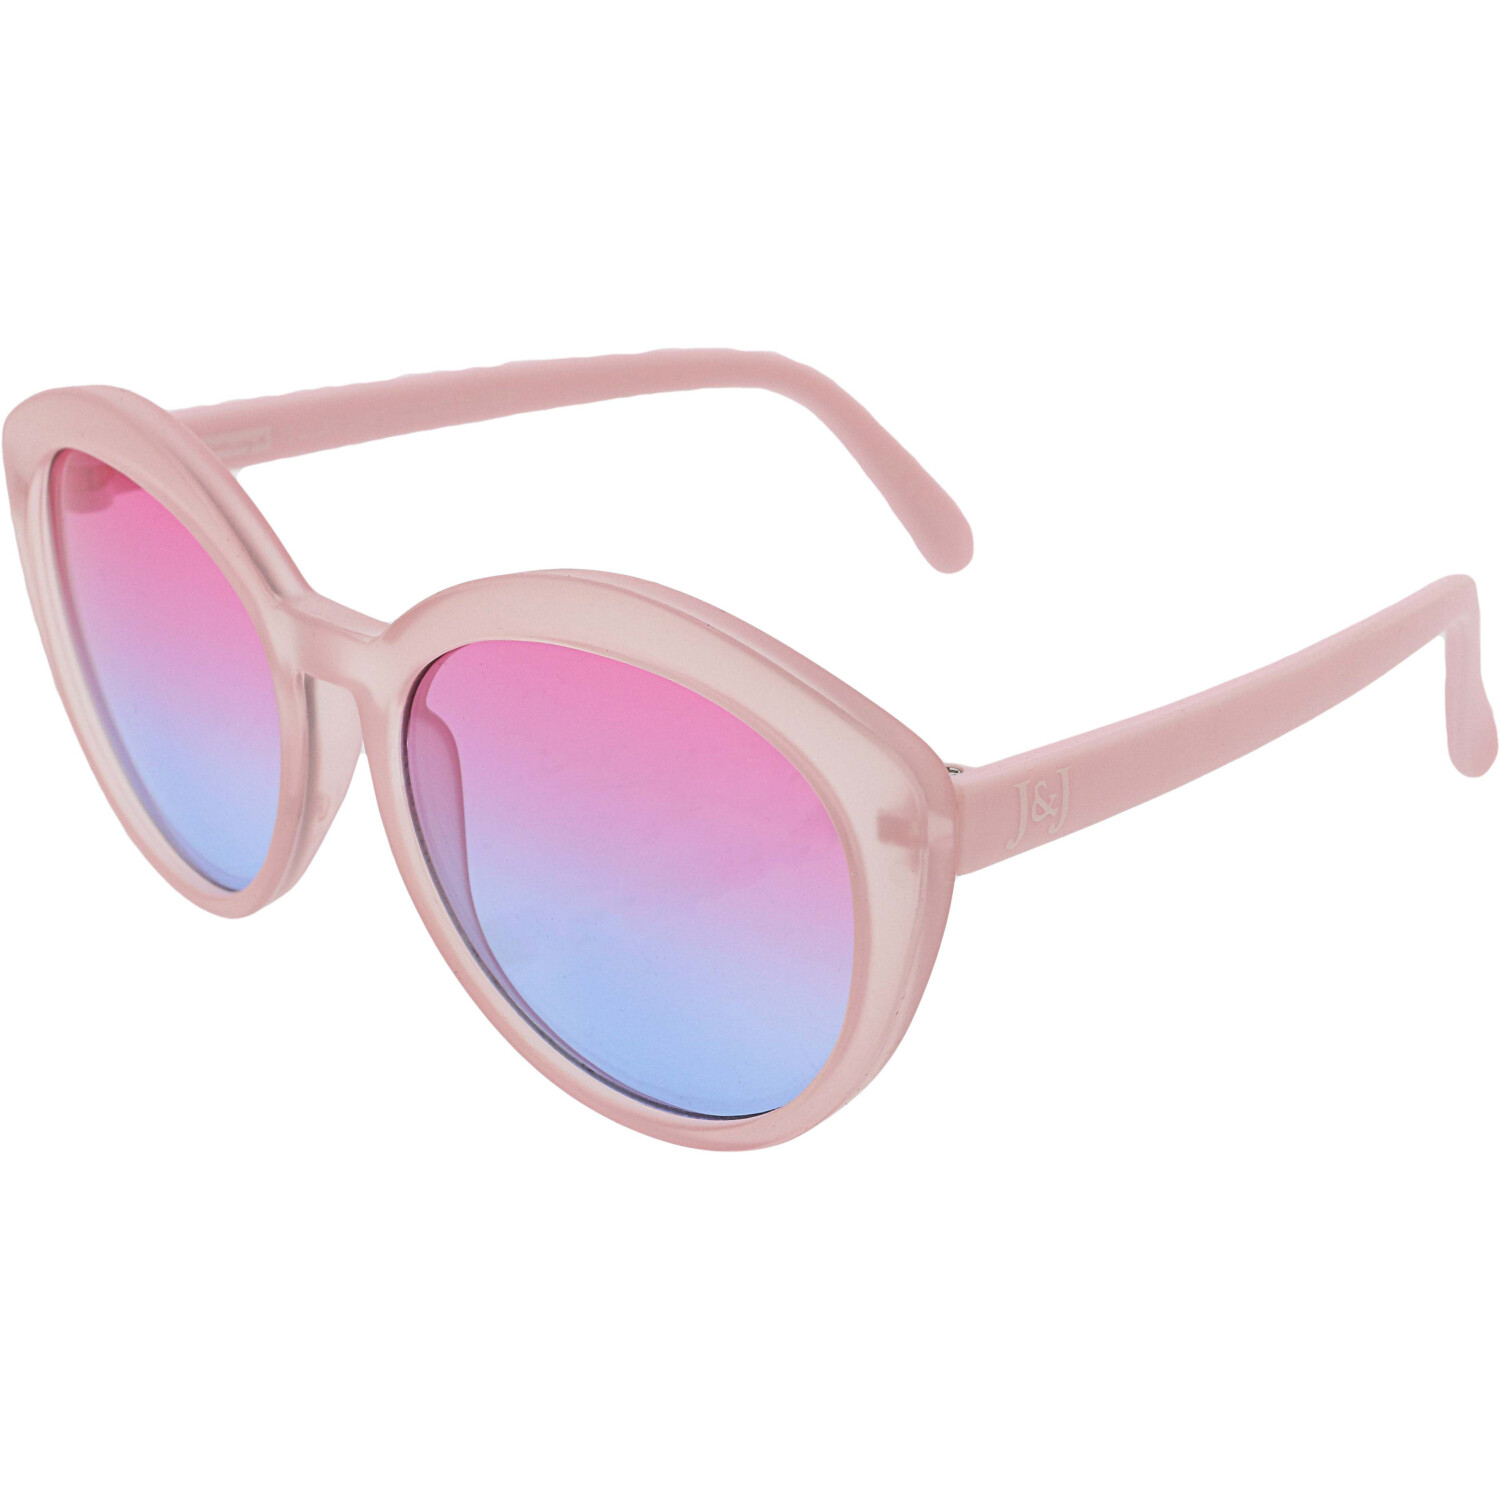 Janie And Jack Girl's Ombre Tinted Sunglasses 200385808 Pink Butterfly